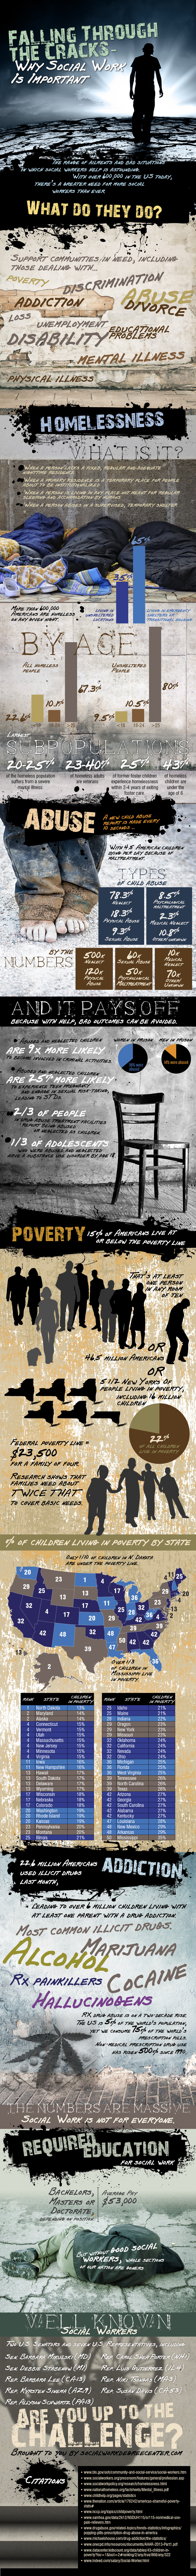 Child Poverty, Unemployment, Homelessness: The Role of Social Workers in America